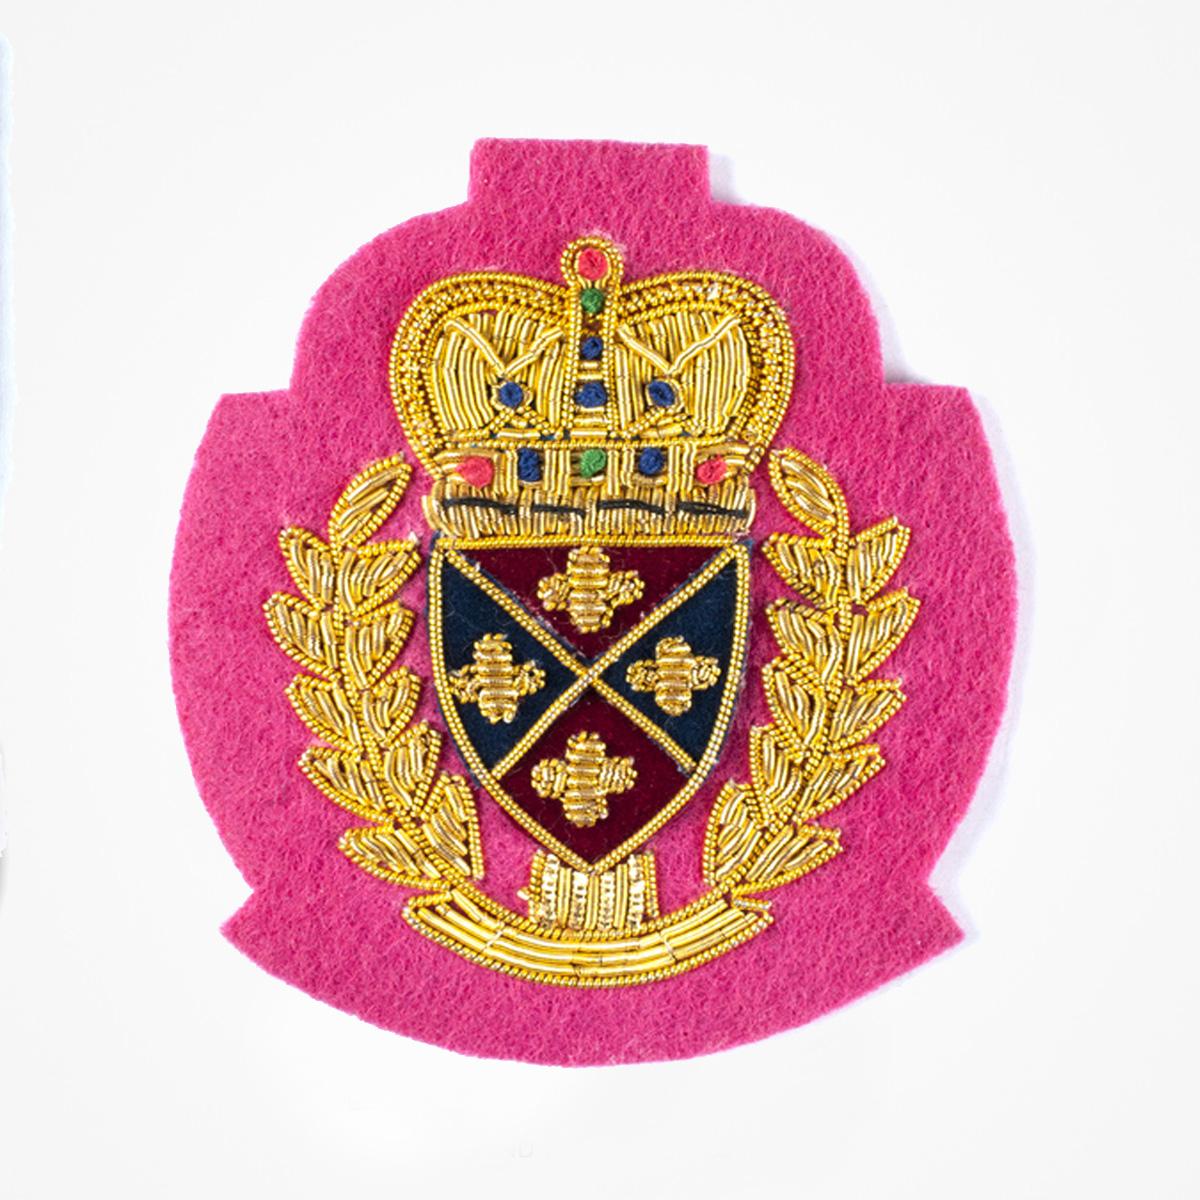 QG Gold Bullion wire Blazer Pocket Crest Patch on pink felt - Fashionable 3D embroidered look Made by skilled artisans Bullion wire and silk thread hand Stitched on Black color Felt Available in gold and silver colors Size = 72 mm height 60 mm width sew-on backing: Perfect for caps, sports jacket, leather jackets, blazer coat, Blazer Pocket, shirts uniforms, Accessories and many More Pin backing: easy to removable 5